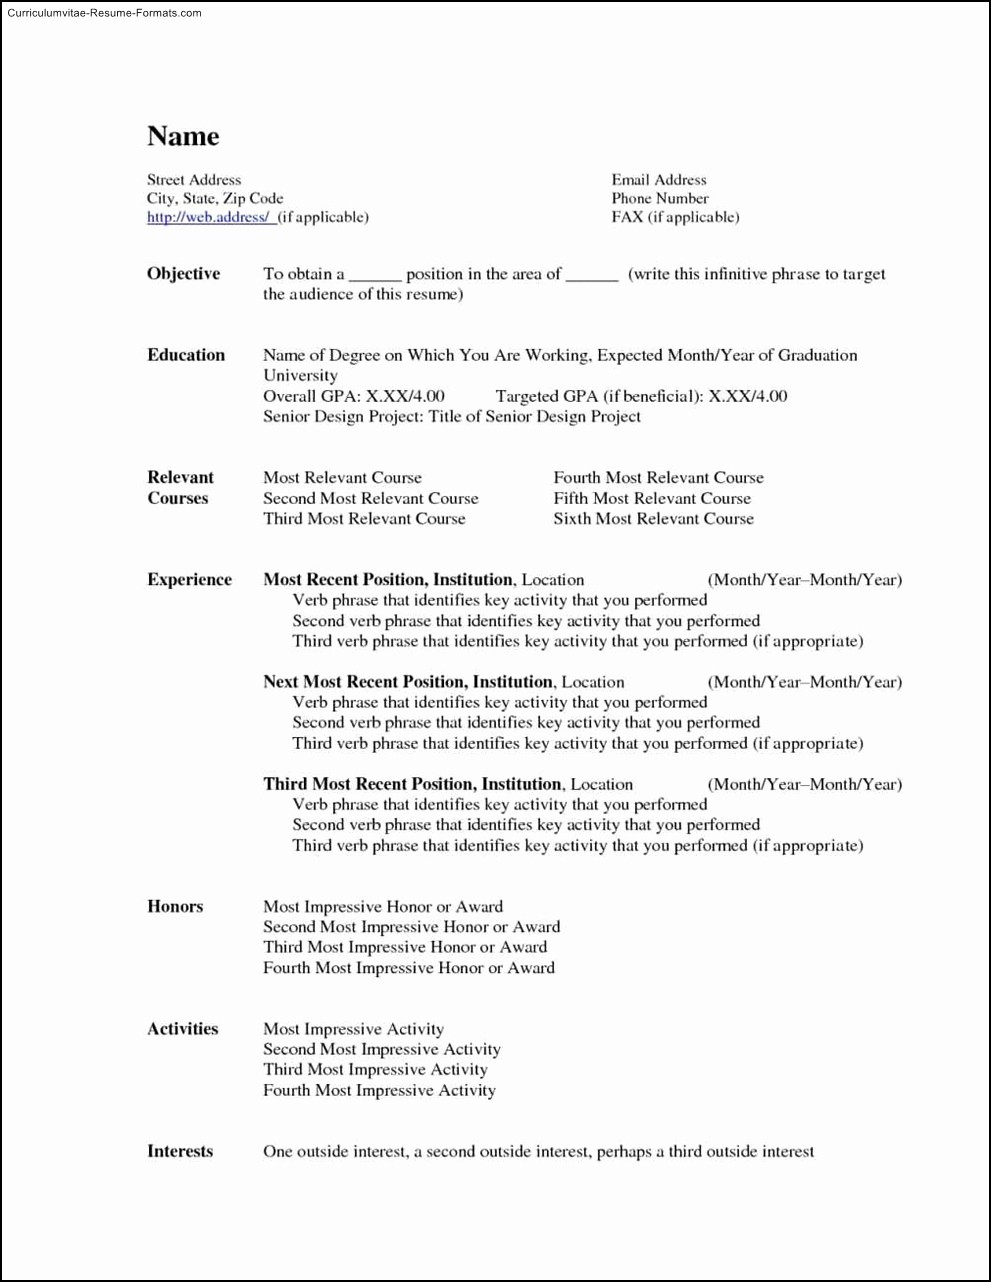 Resume Templates Microsoft Word Free New Free Microsoft Word Resume Template Free Samples